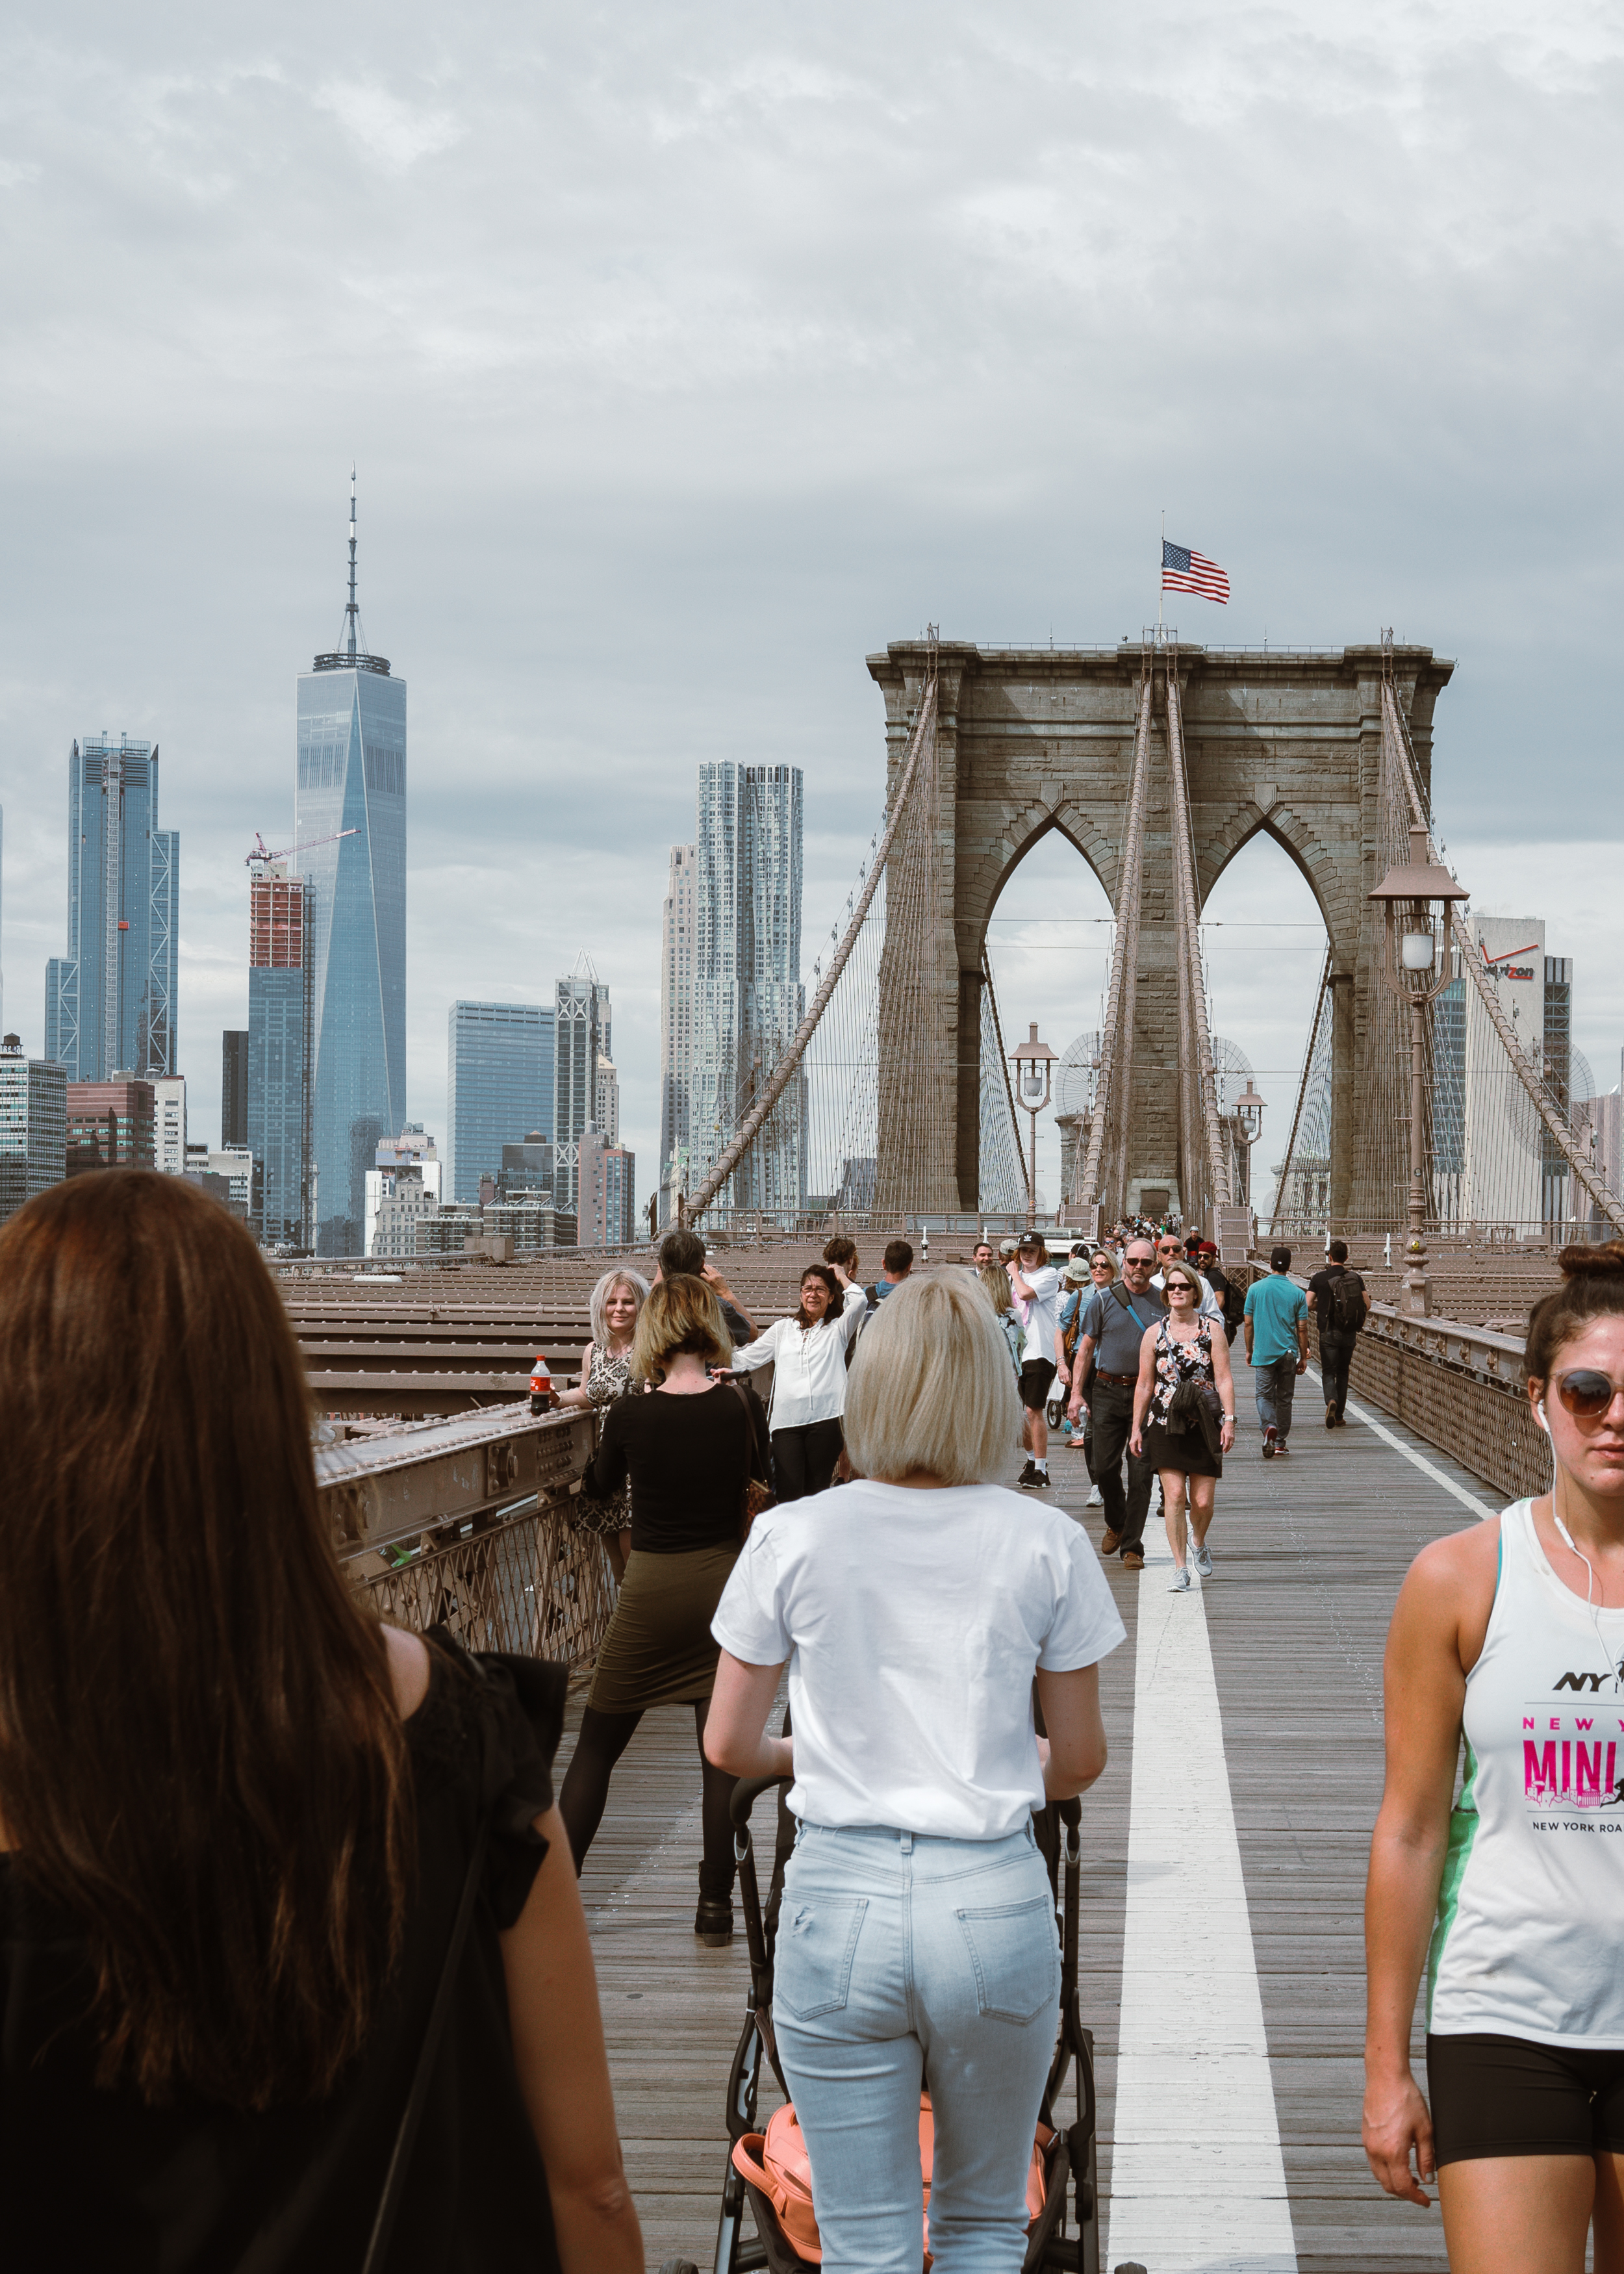 Walking The Brooklyn Bridge with a toddler